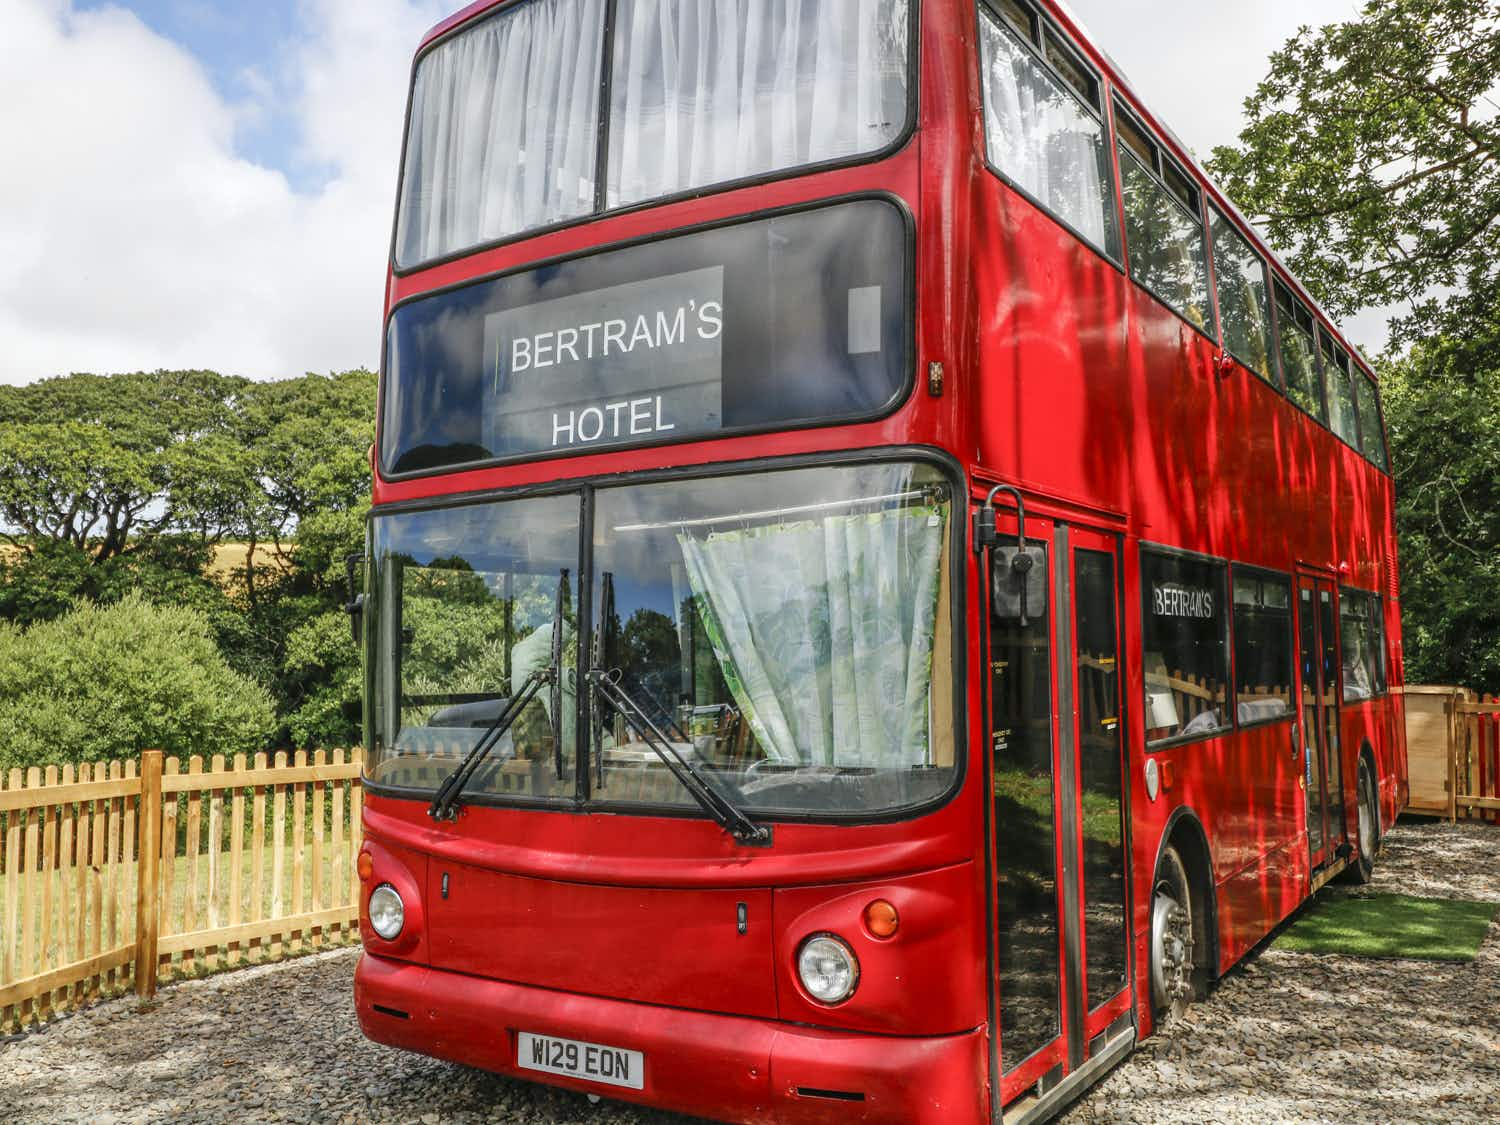 All aboard the Agatha Christie-inspired hotel inside a vintage double decker bus